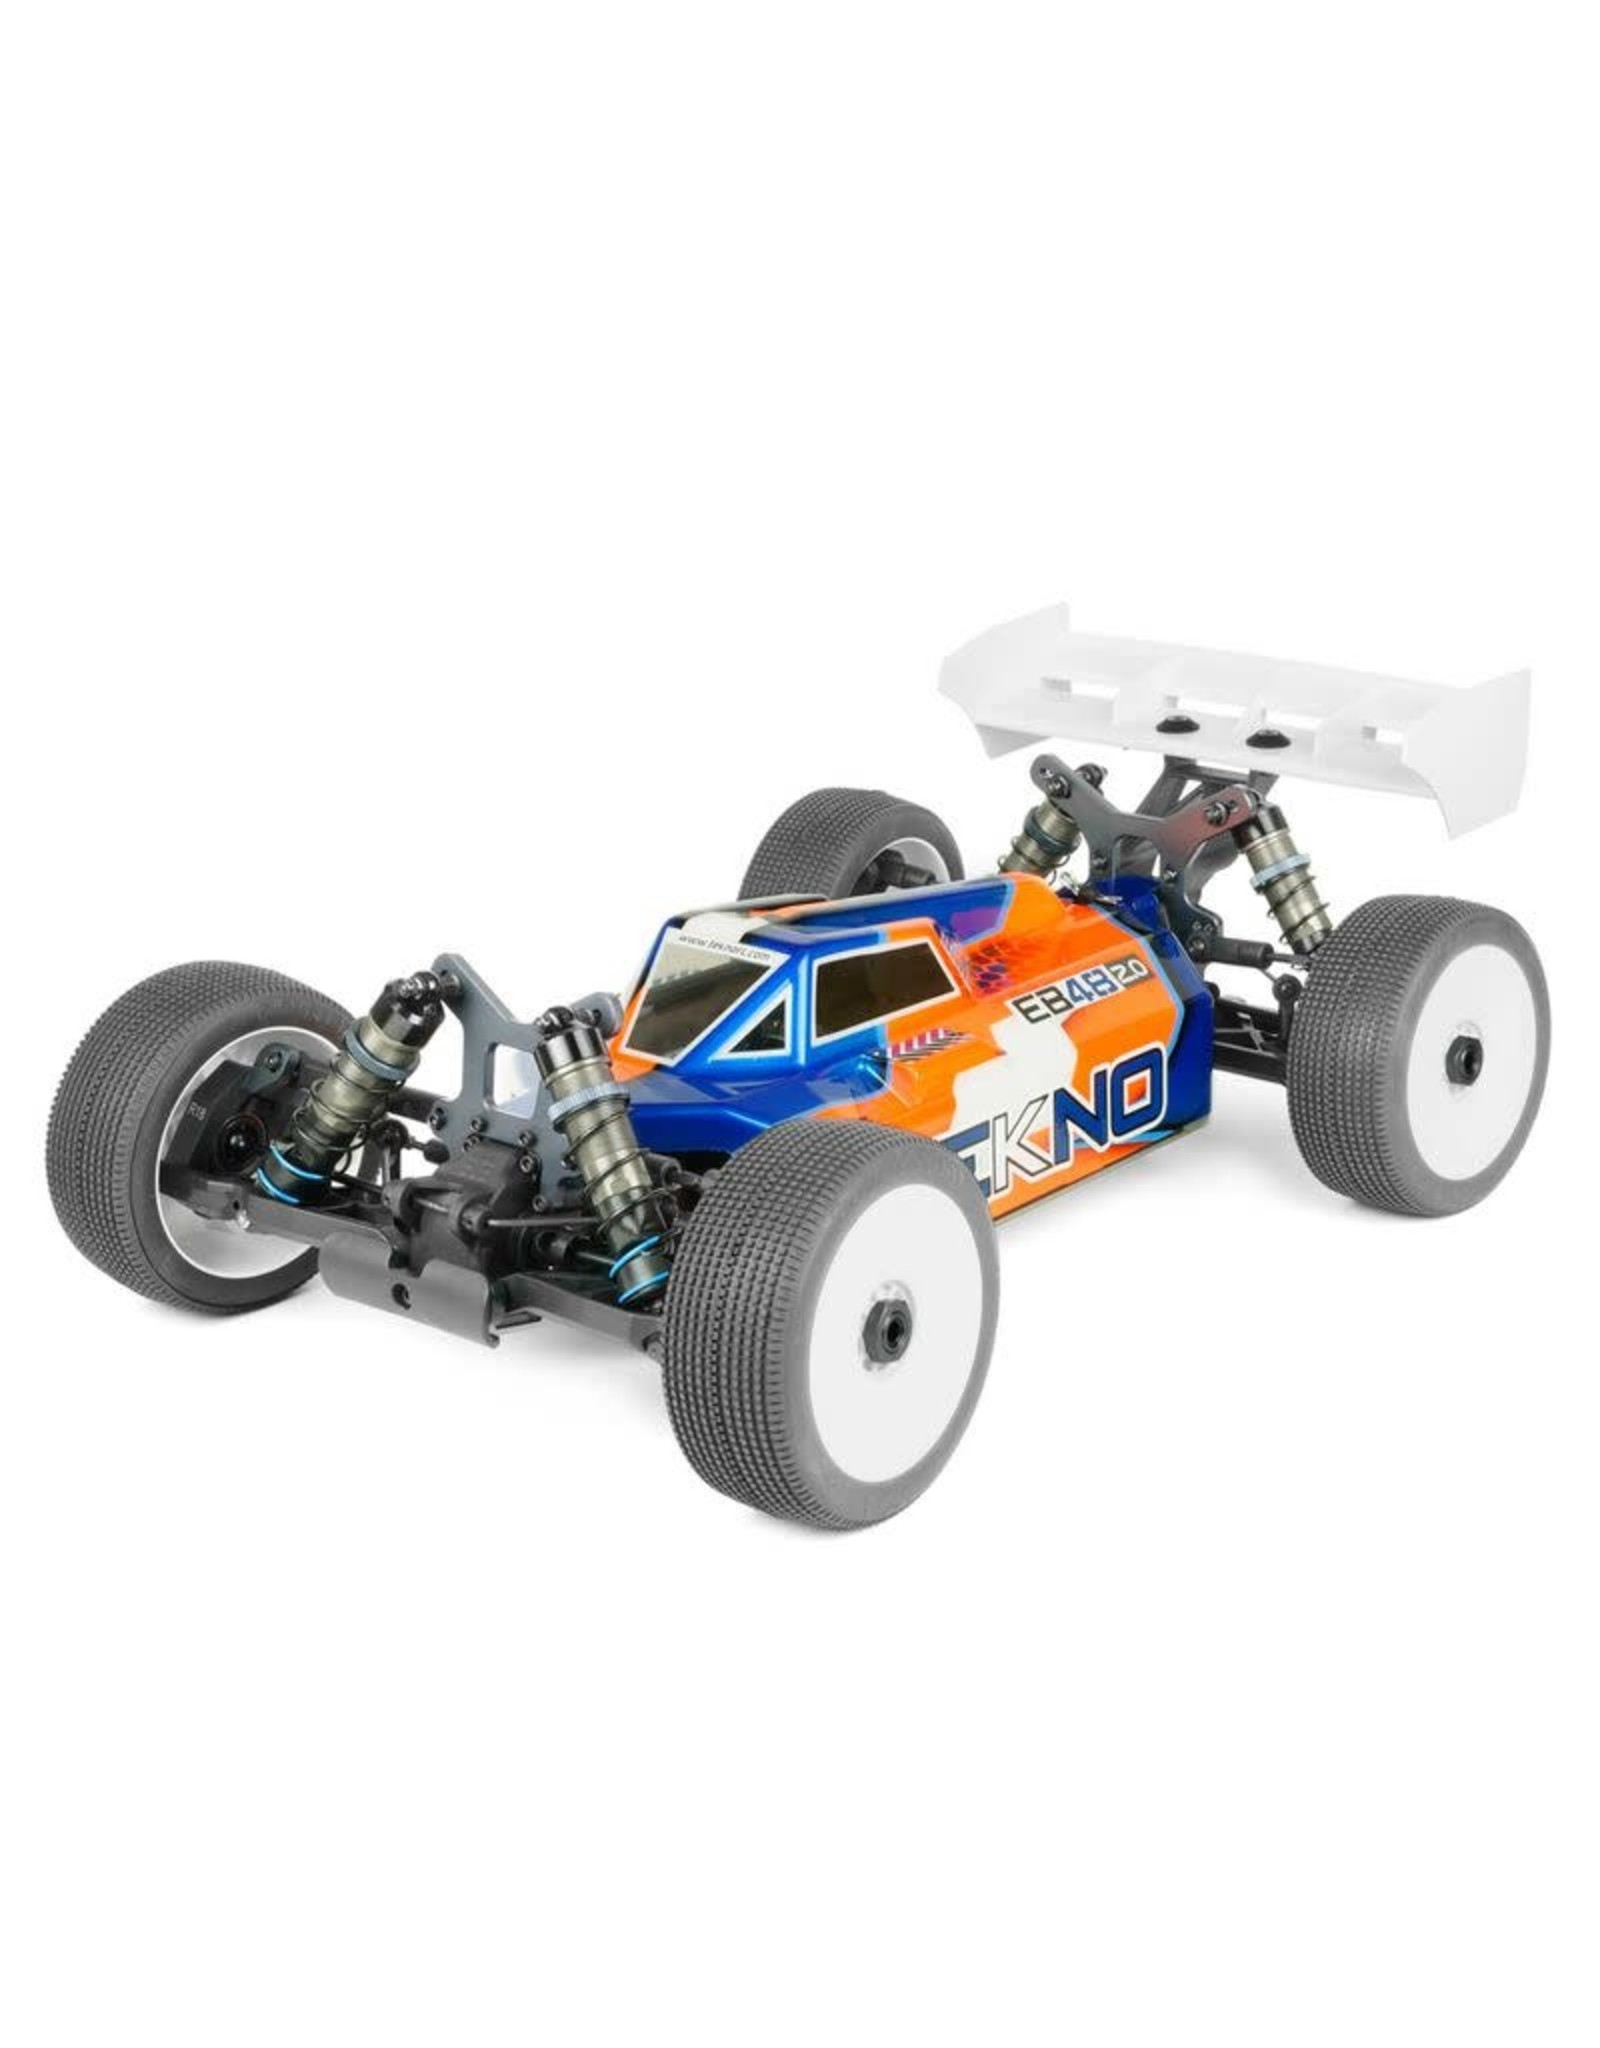 1/8 EB48 2.0 4WD Competition Electric Buggy Kit TKR9000